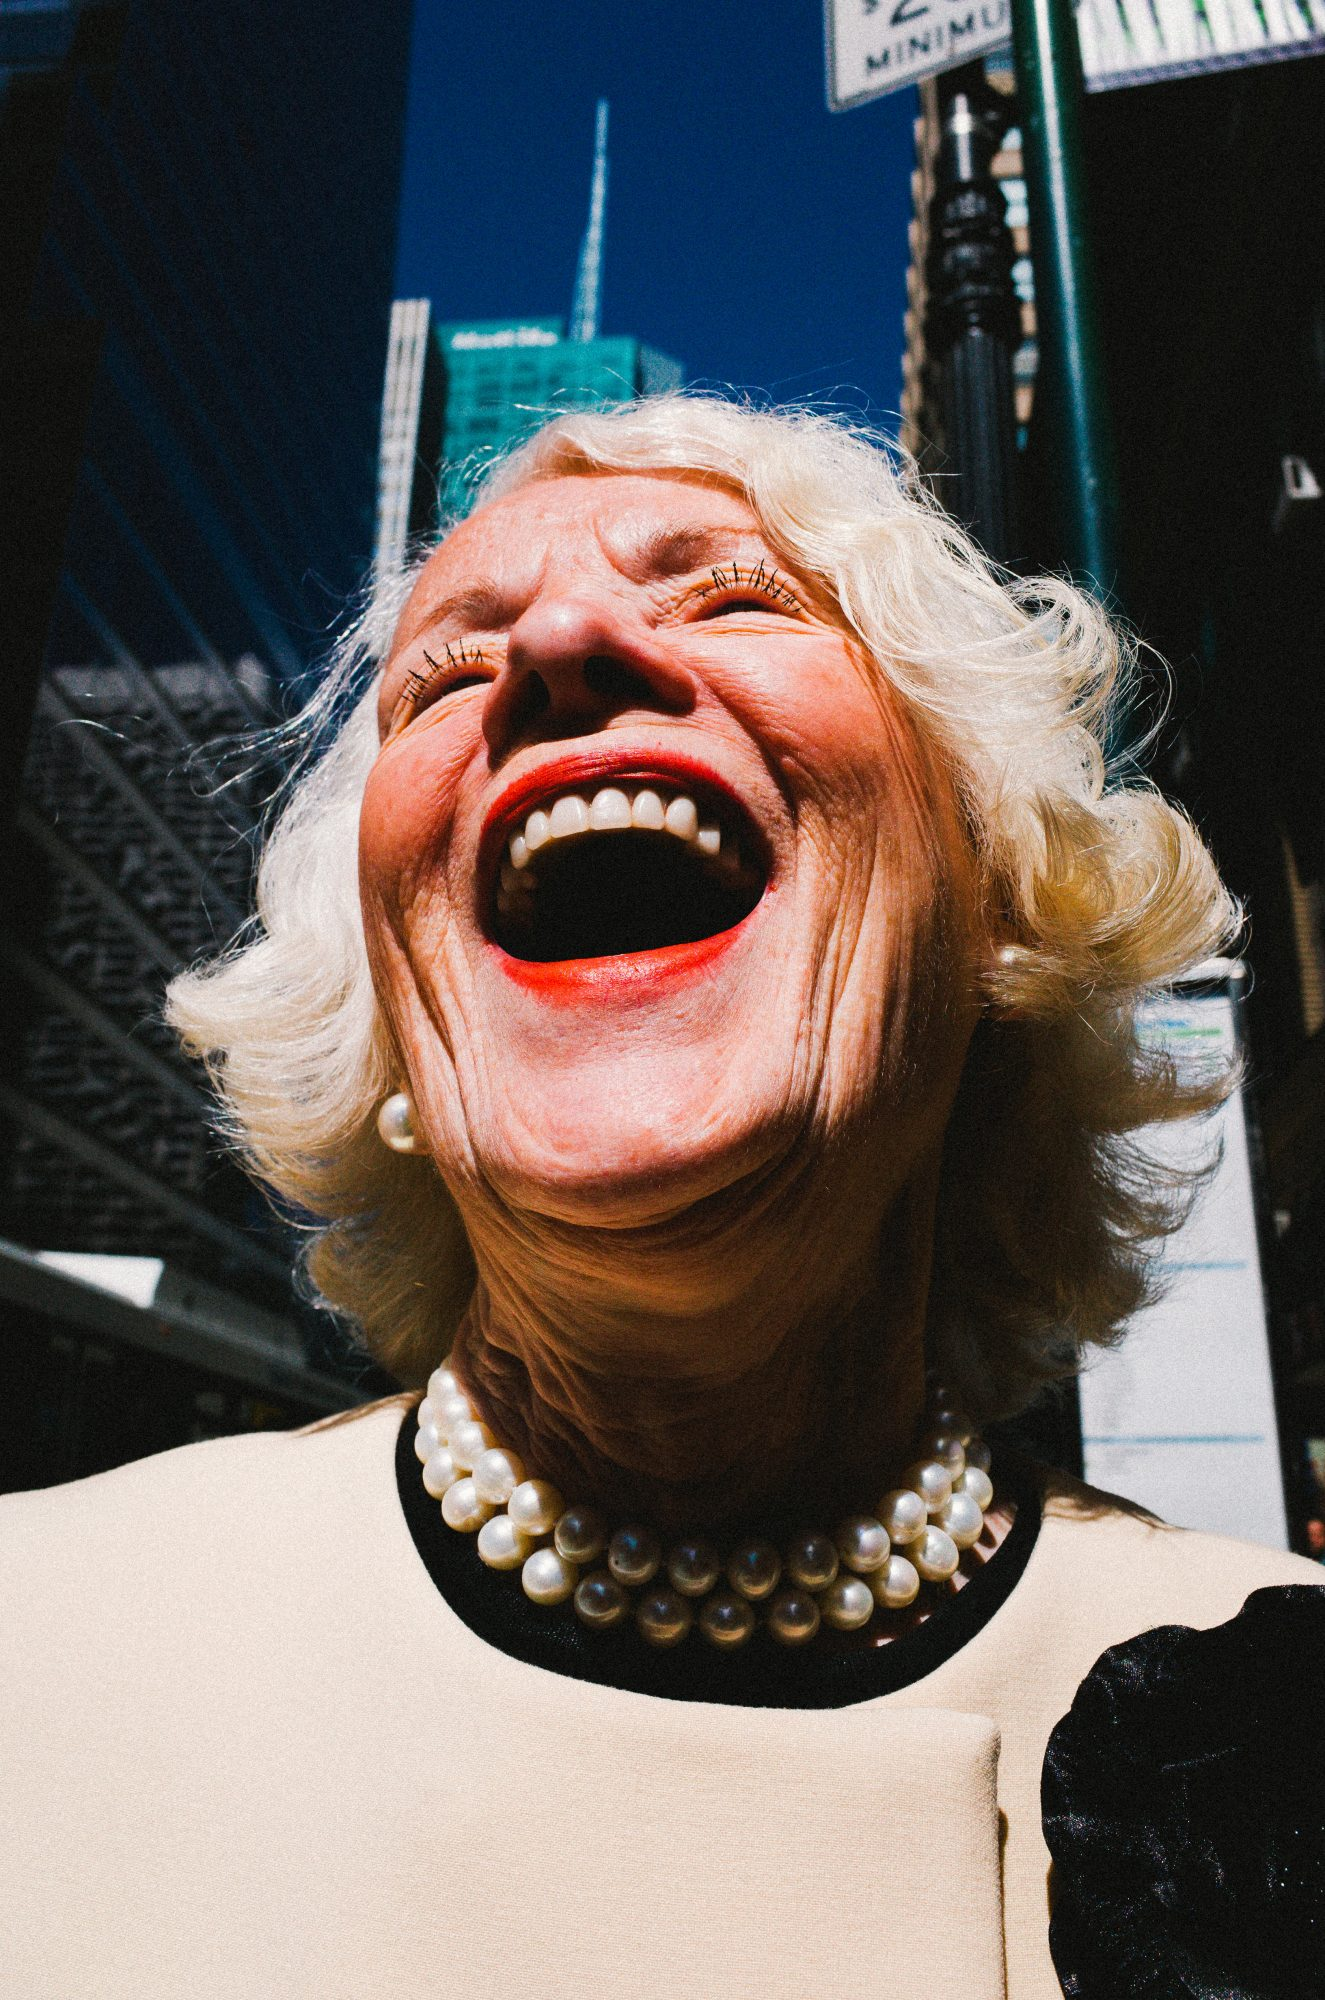 eric-kim-street-photography-portrait-ricohgr-2015-nyc-laughing-lady-5thave